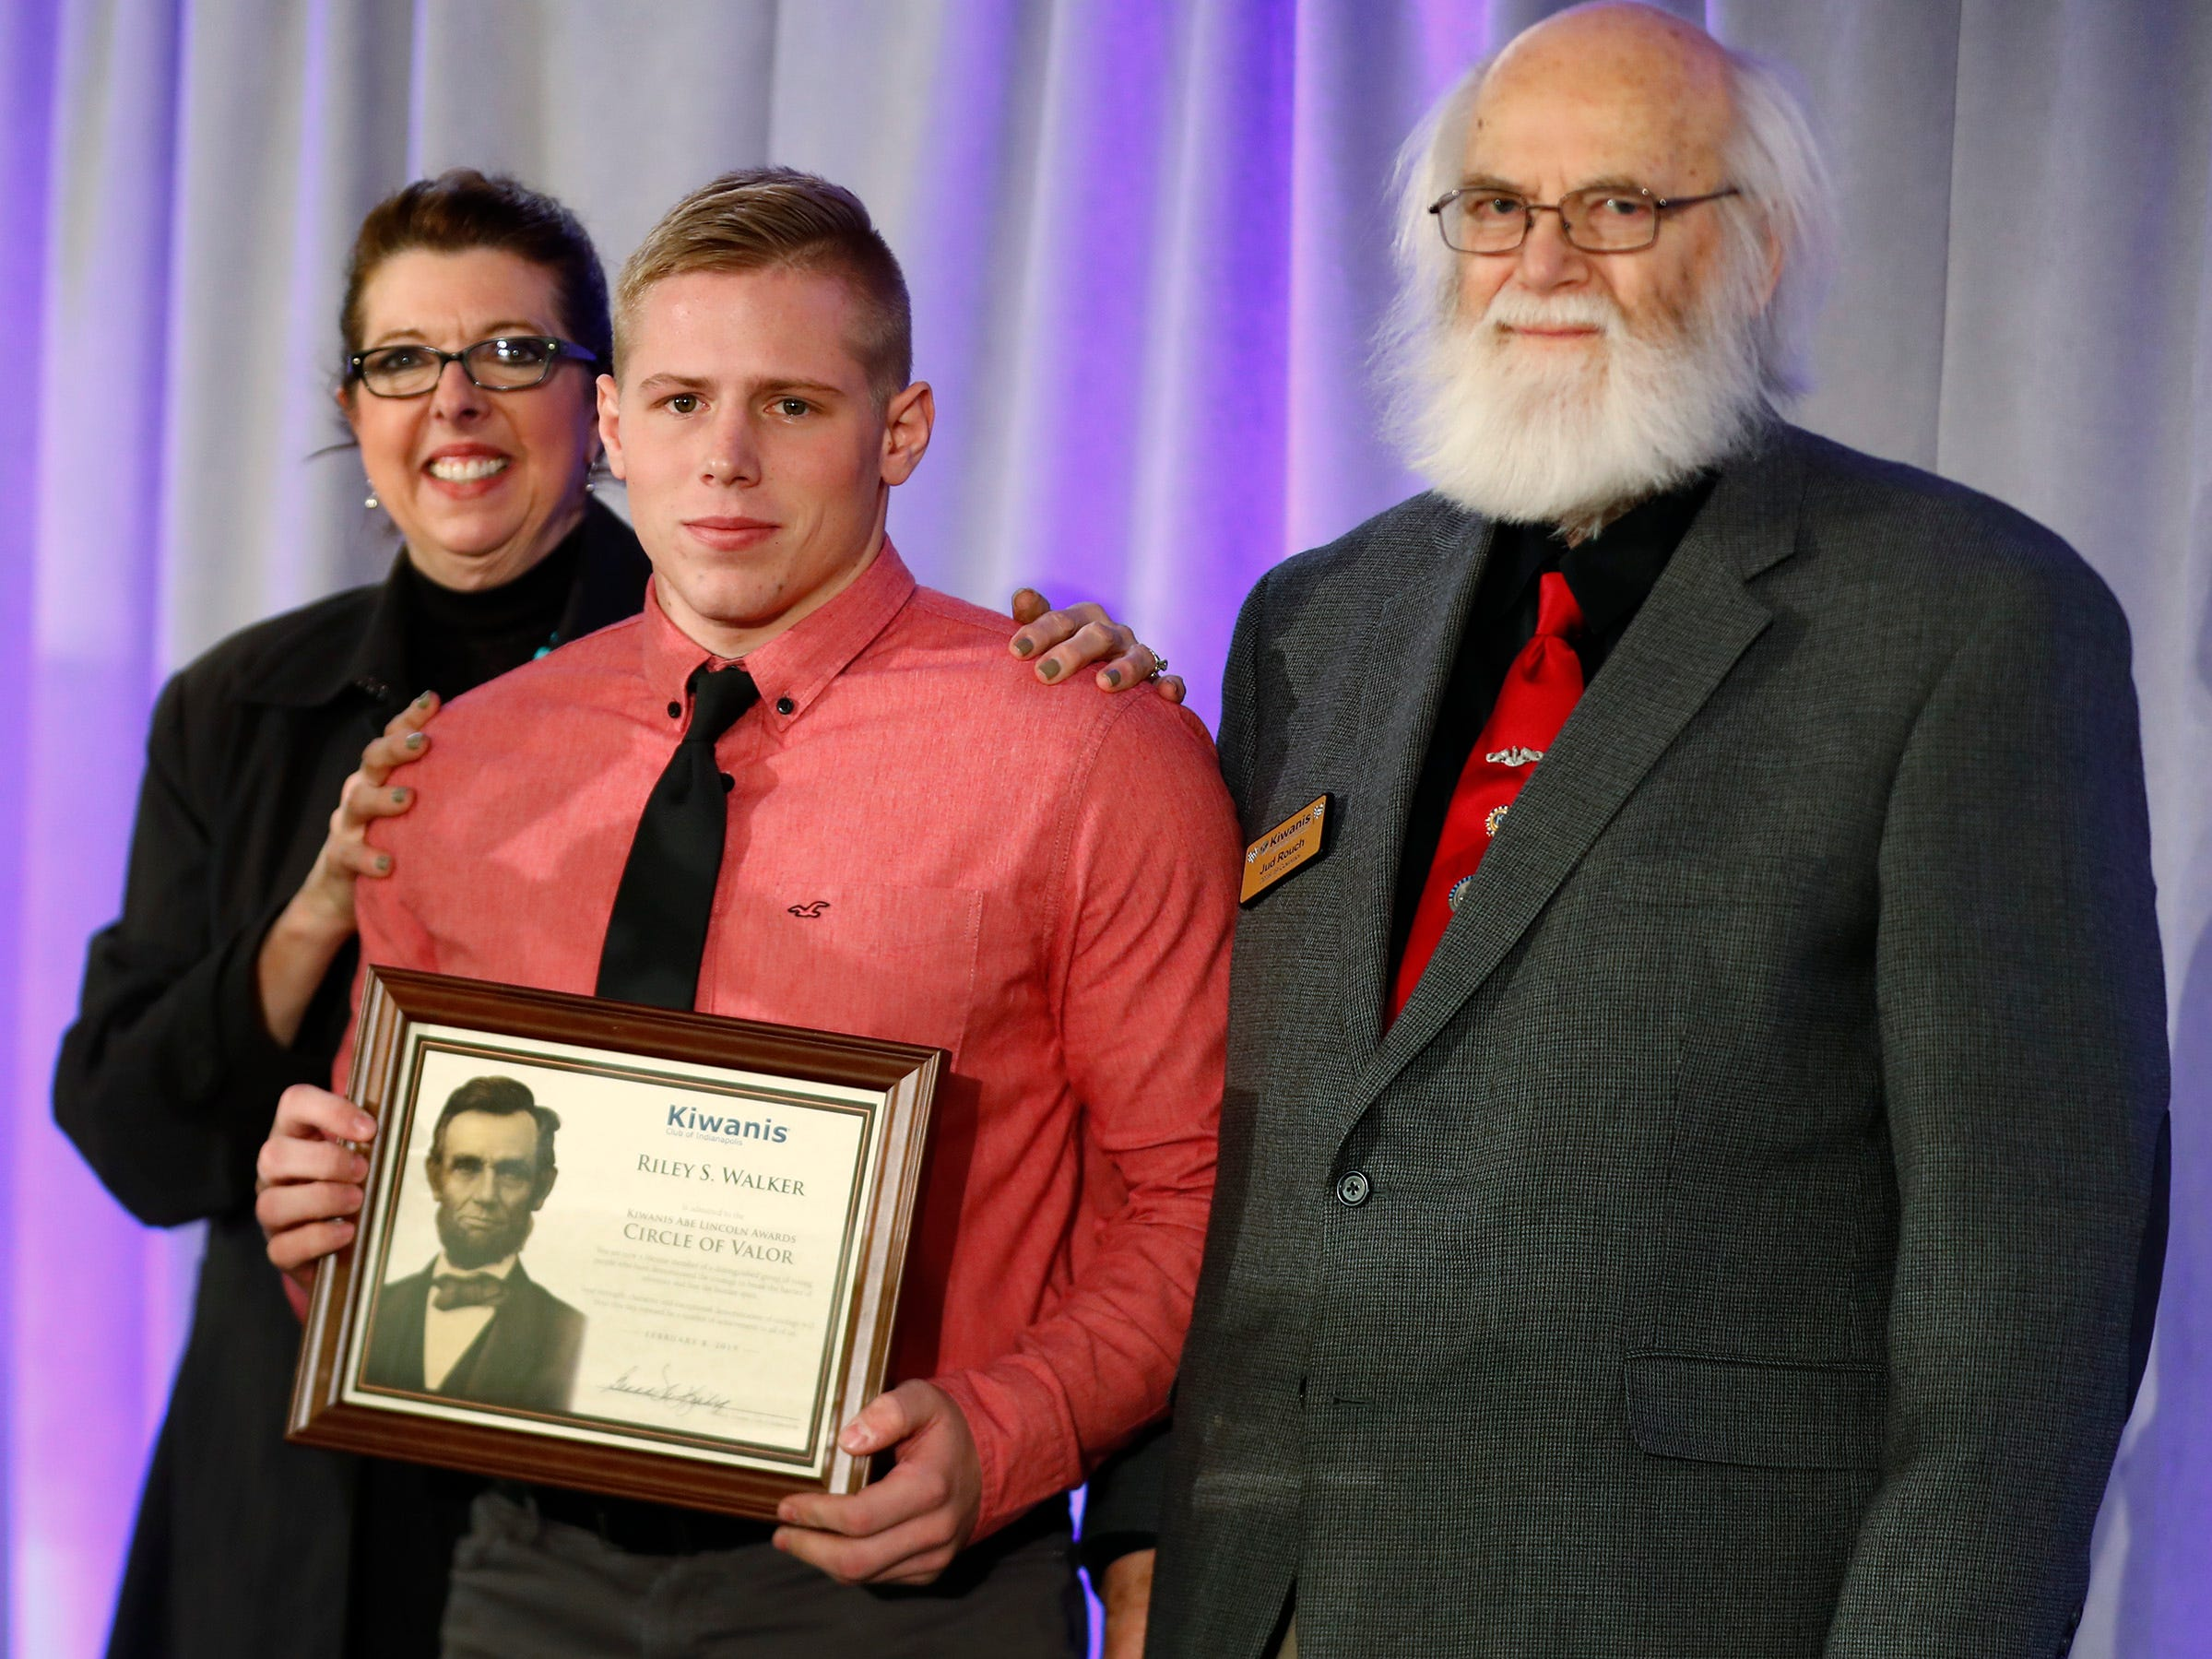 Speedway High School student Riley Walker, center, is honored with a Circle of Valor award at the 44th Annual Abe Lincoln Awards Program, Friday, Feb. 8, 2019. The Kiwanis Club of Indianapolis program was held at Ivy Tech Community College.  20 high school student were honored at the annual event which celebrates overcoming adversity in life to succeed.